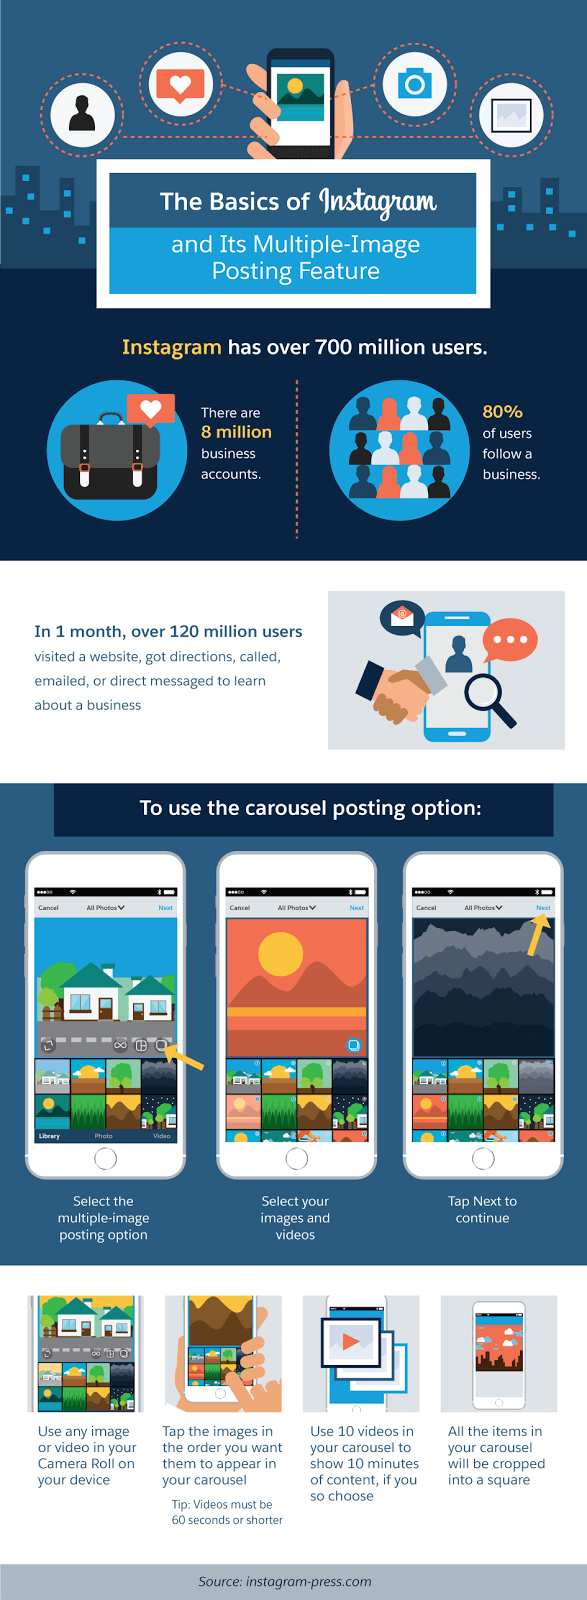 Creative Ways to Use the Instagram Multiple Image Posting Feature